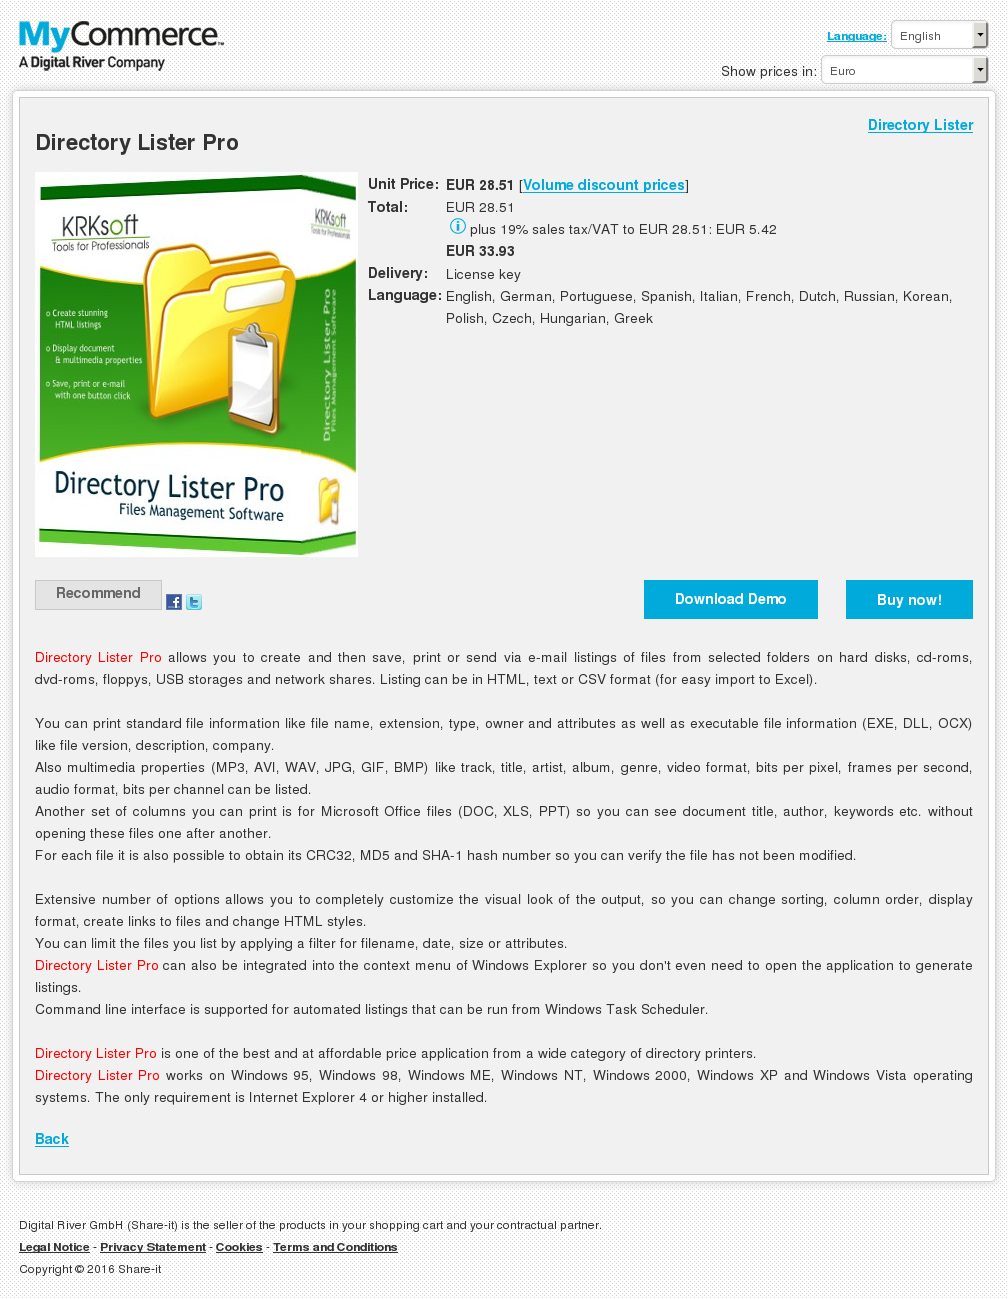 Directory Lister Pro Download